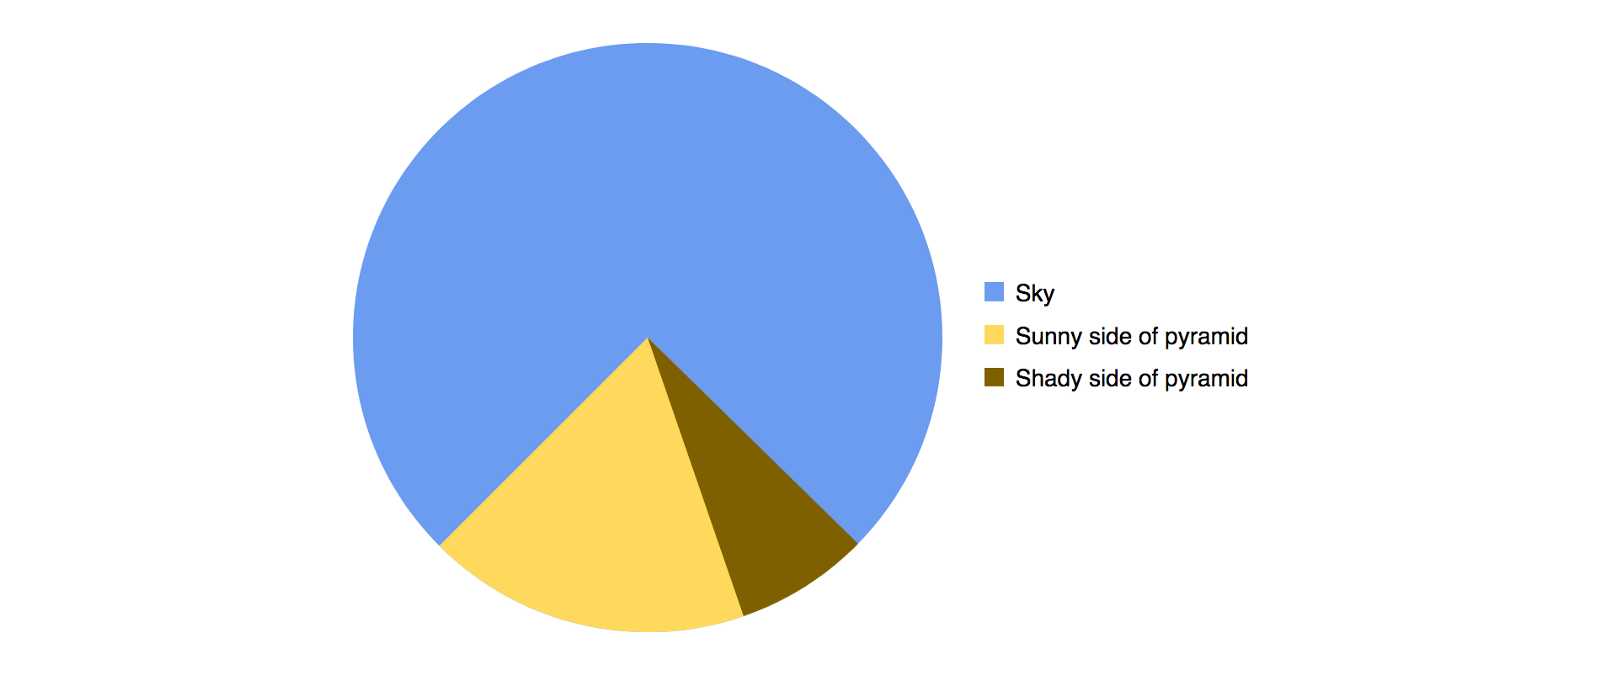 Just another pie chart meme in pure css benjamin falk medium do you remember the just another pie chart meme that is still cycling on the web well i decided to create a css version to be fair i am using sass ccuart Gallery